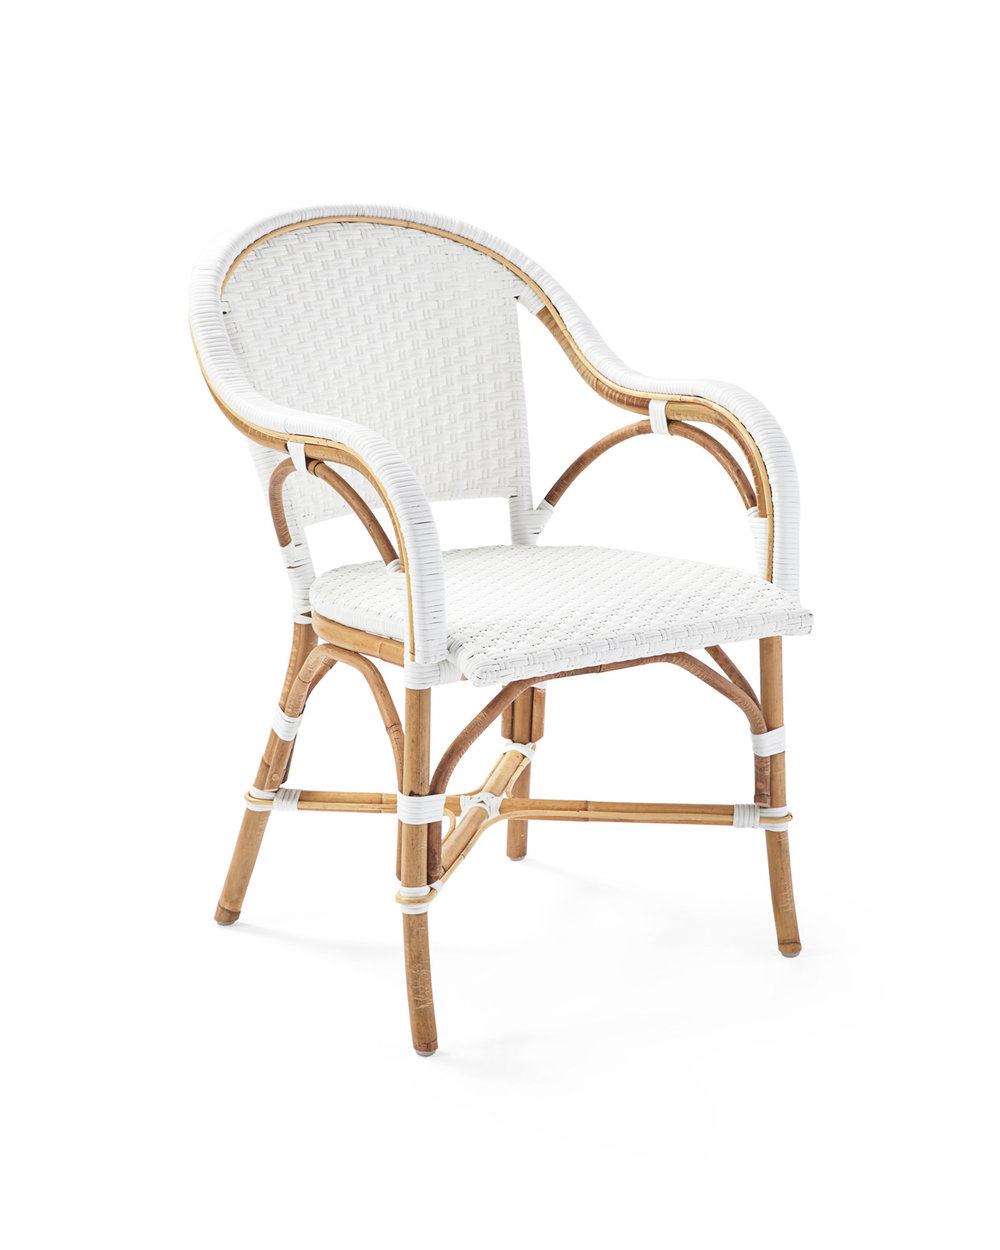 Furn_New_Riviera_Arm_Chair_White_Angle_MV_0151_Crop_SH.jpg